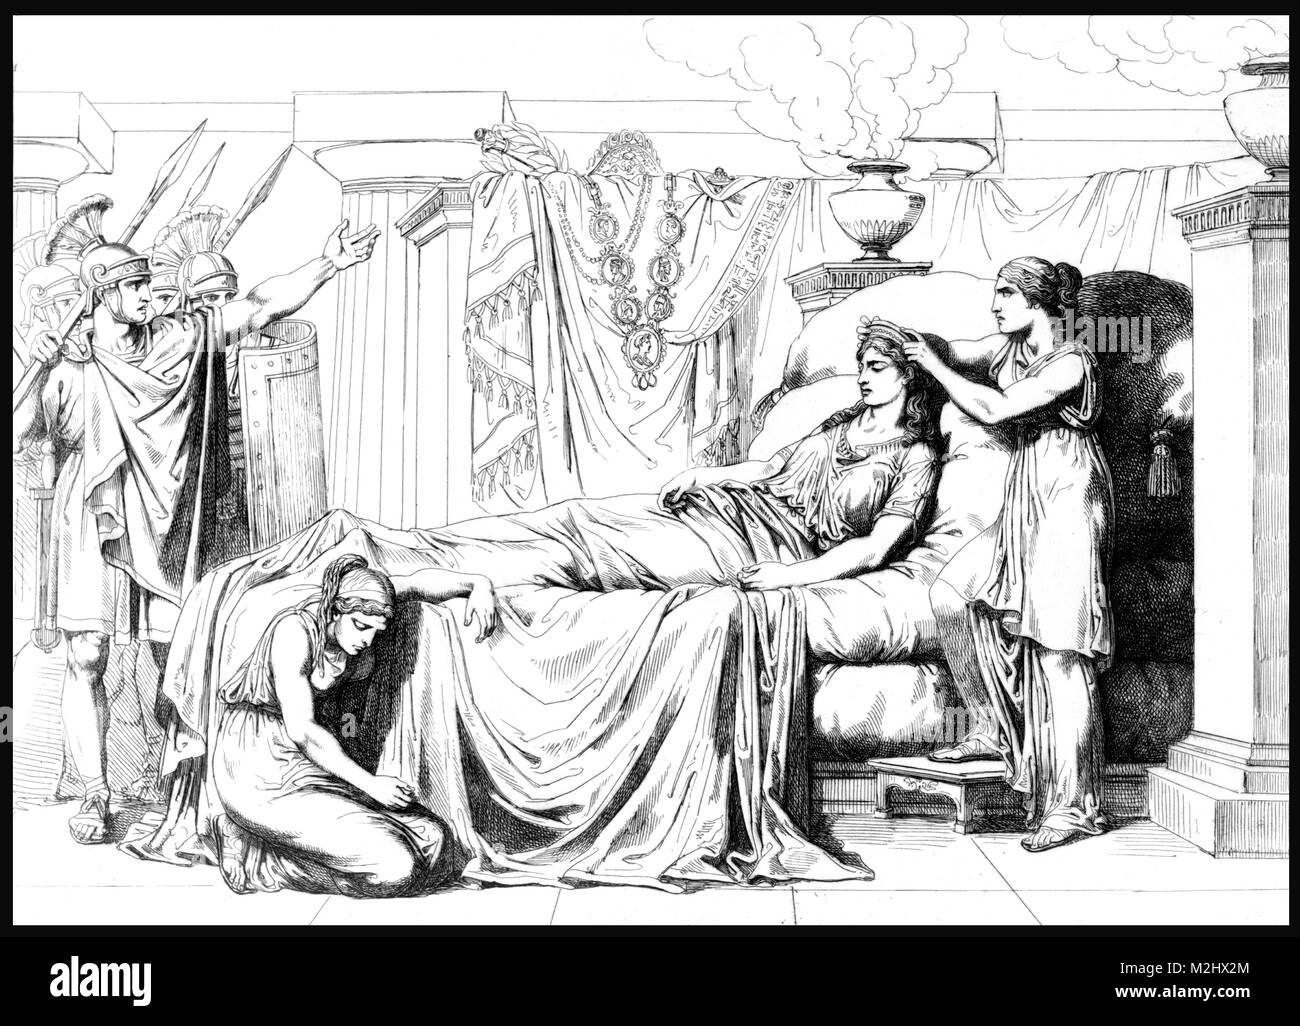 Death of Cleopatra, Queen of Egypt, 30 BC - Stock Image